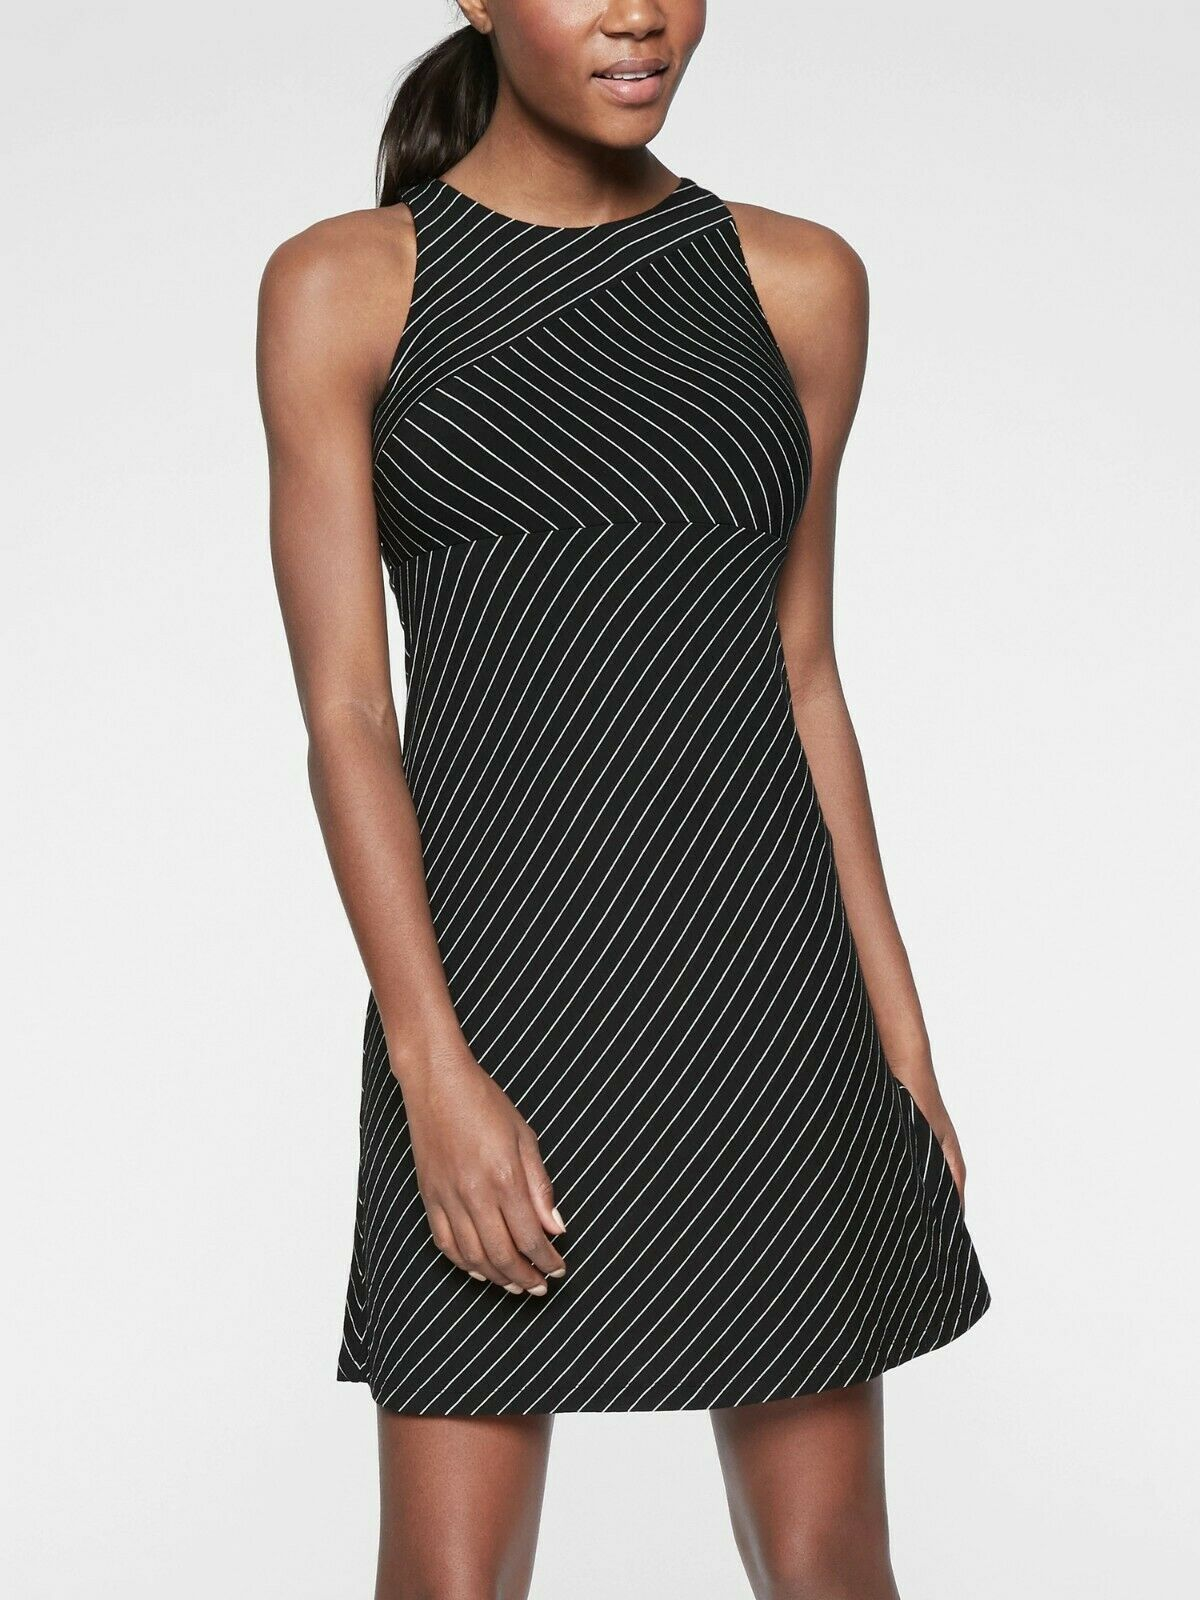 Athleta Santorini High Neck Mix Stripe Dress,Go Stripe schwarz C Größe L